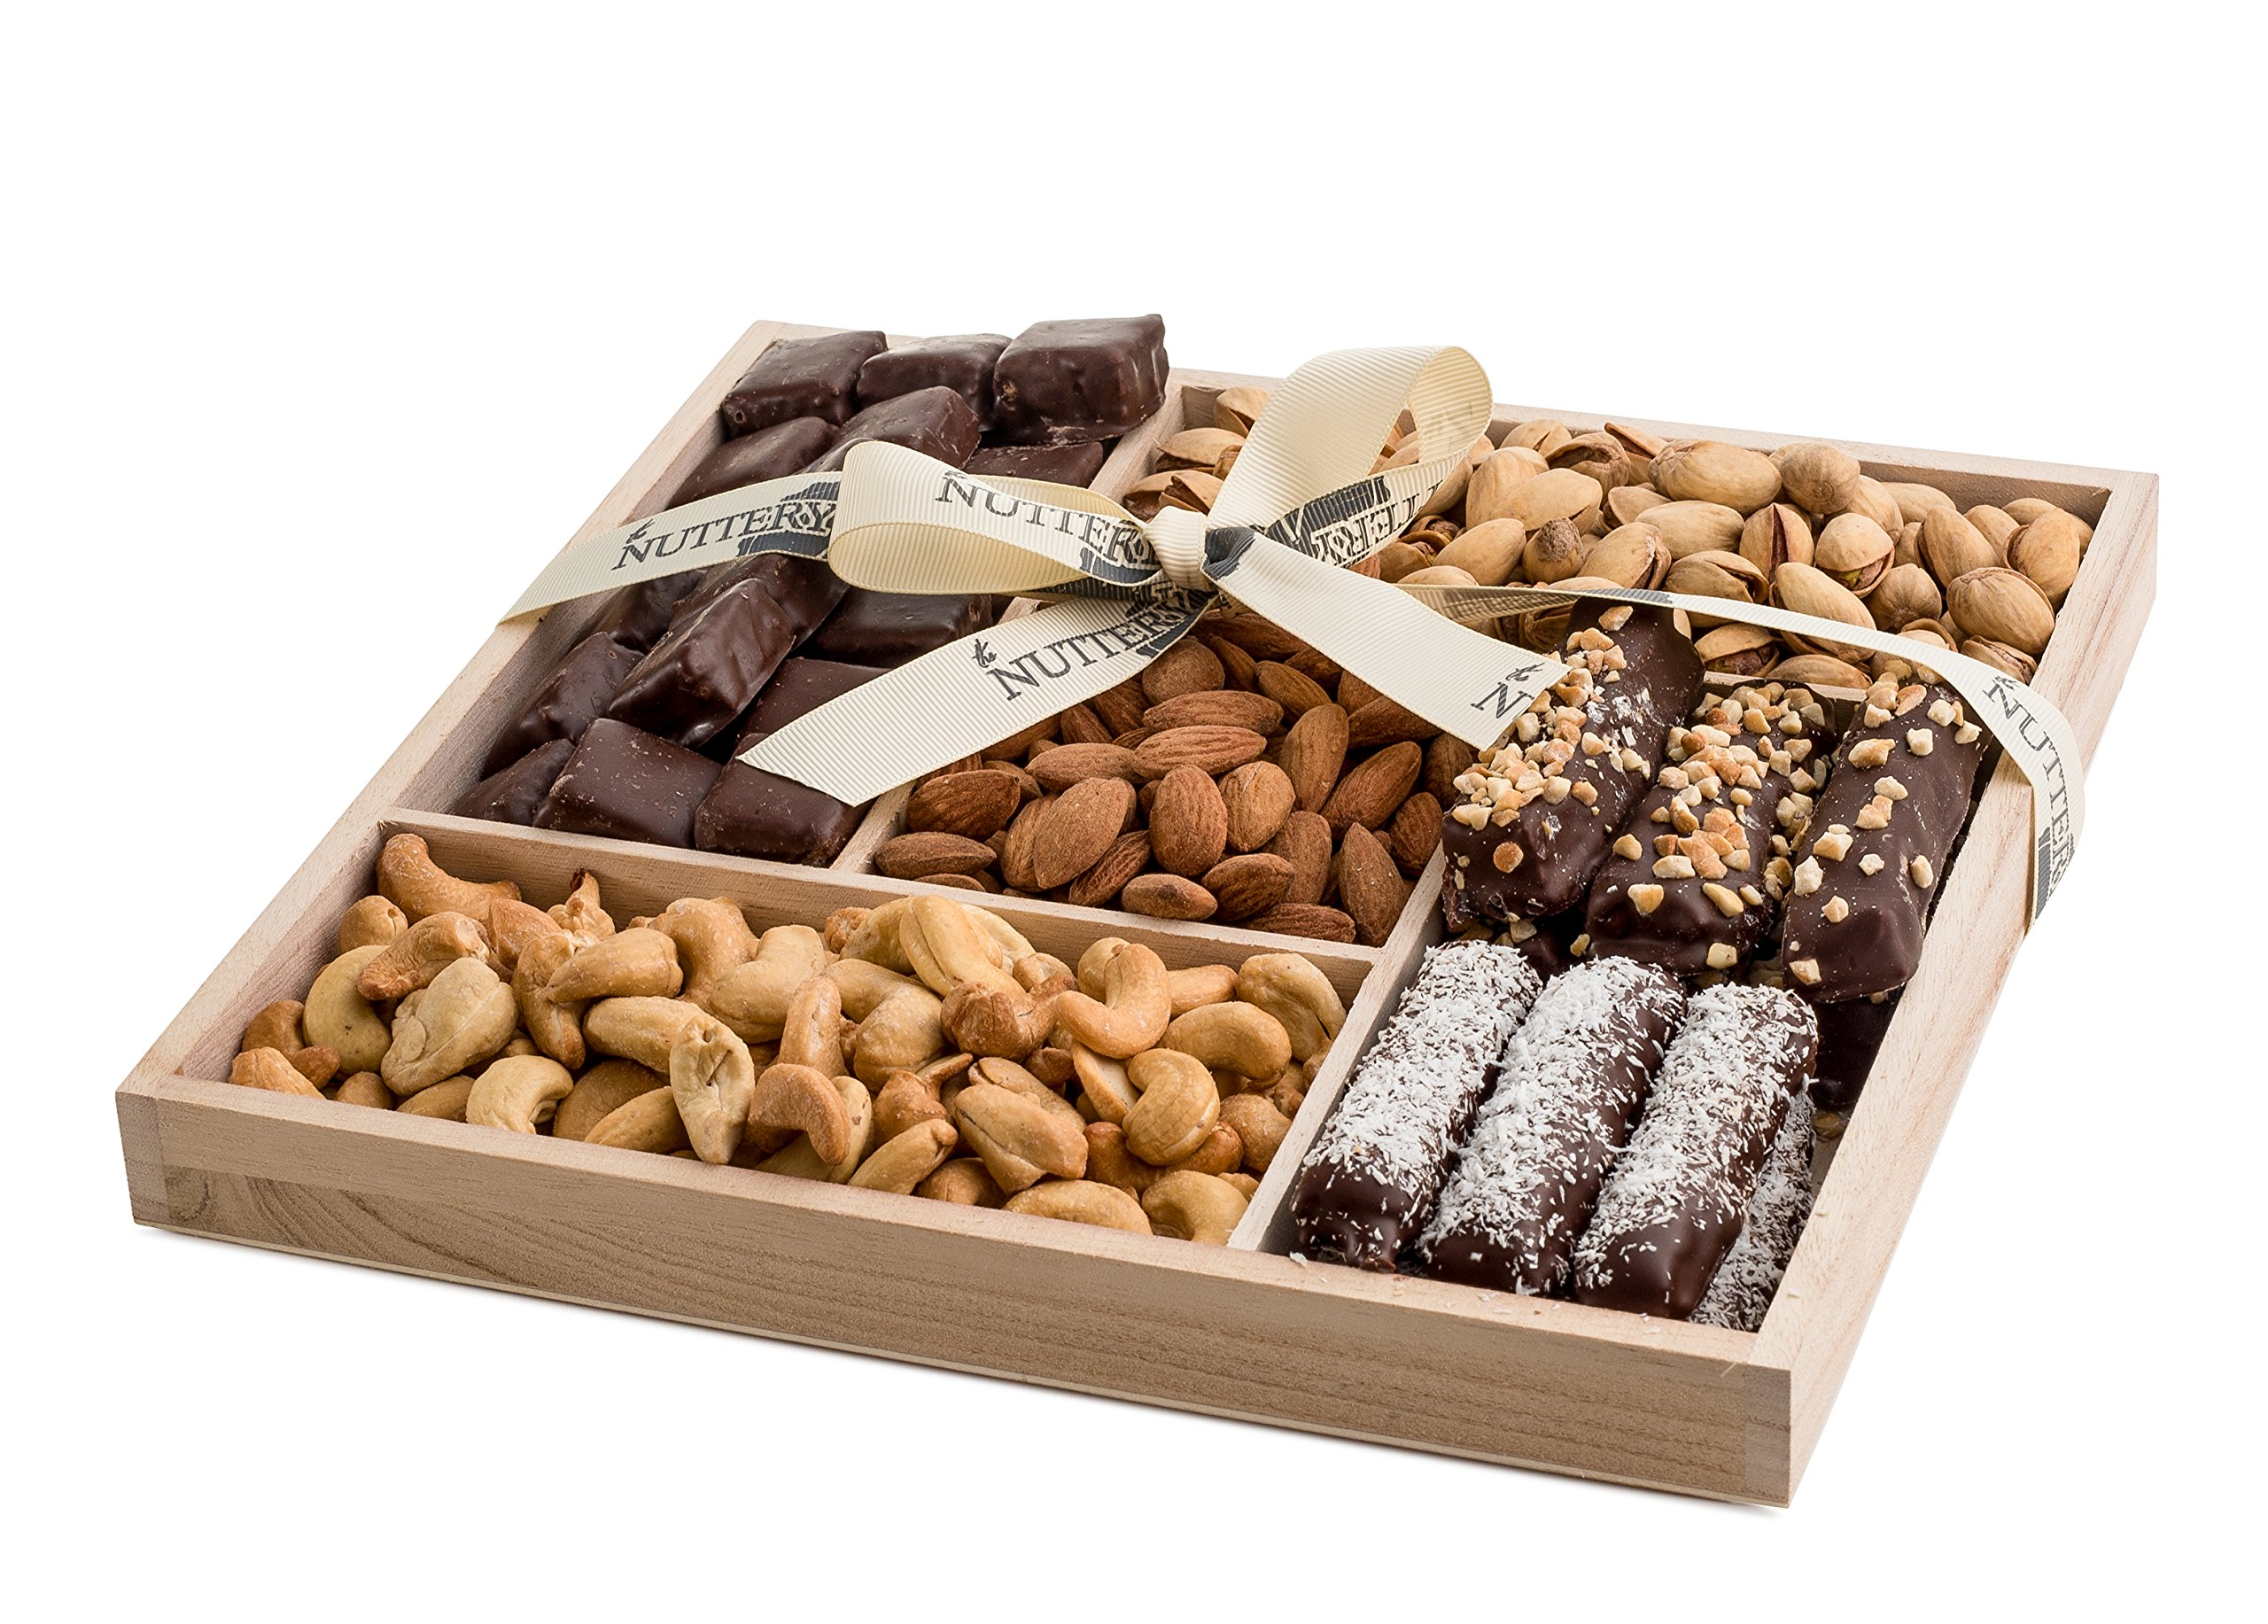 The Nuttery Nuts and Chocolate Mix-Holiday Gift Set- Premium Fine Chocolate and Roasted and Salted Nuts Tray